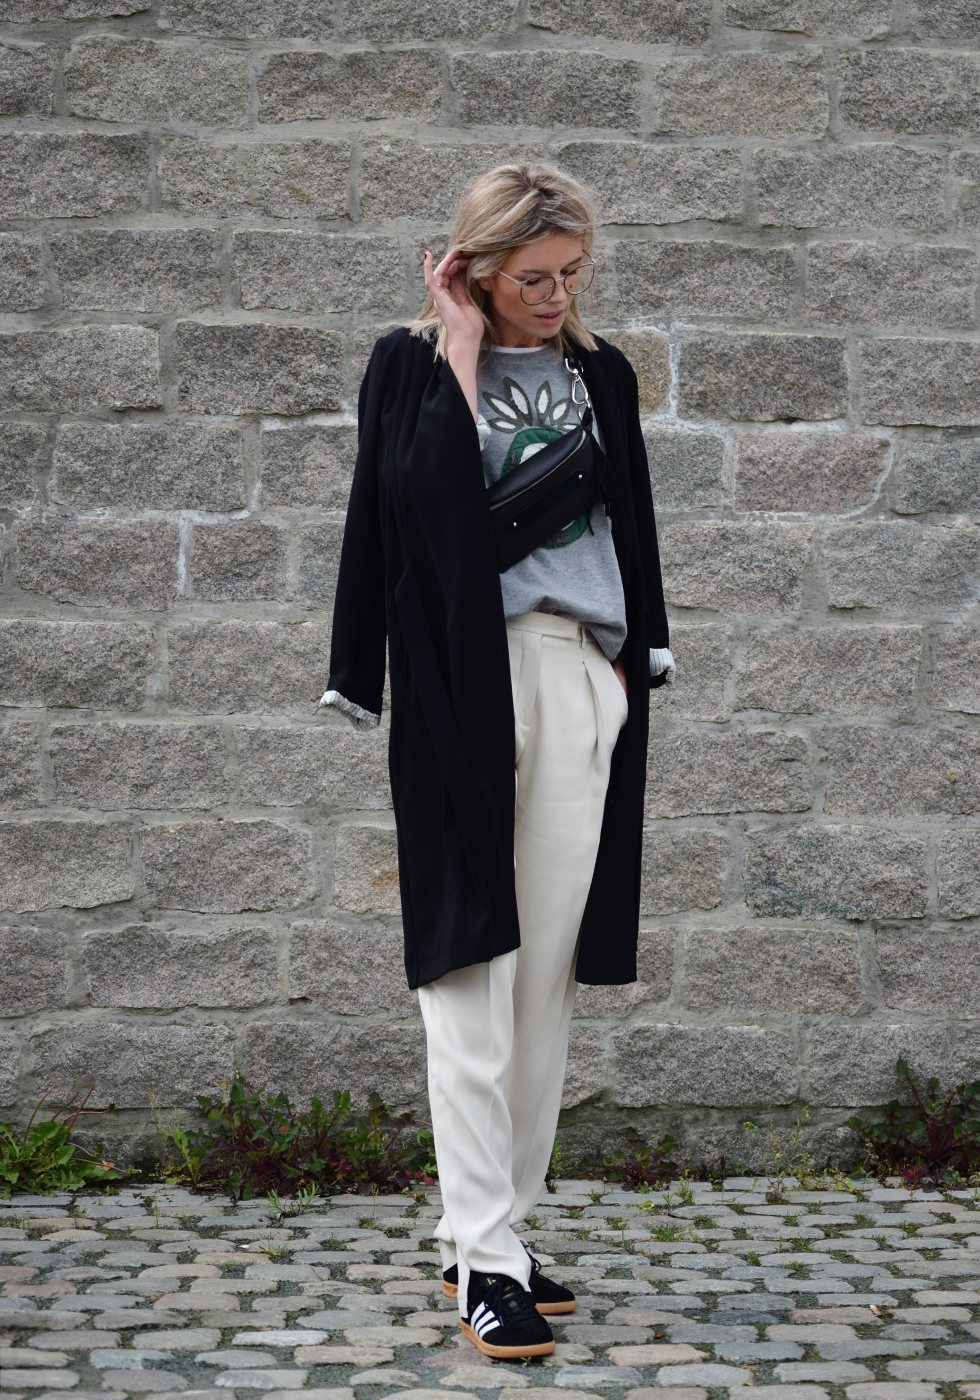 Outfit of the day, Chloé, Dewolf, Adidas, Sooco, Gerard Darel, IKKS, Vanessa Bruno, Marie Martens, ootd, style, fashion, blogger